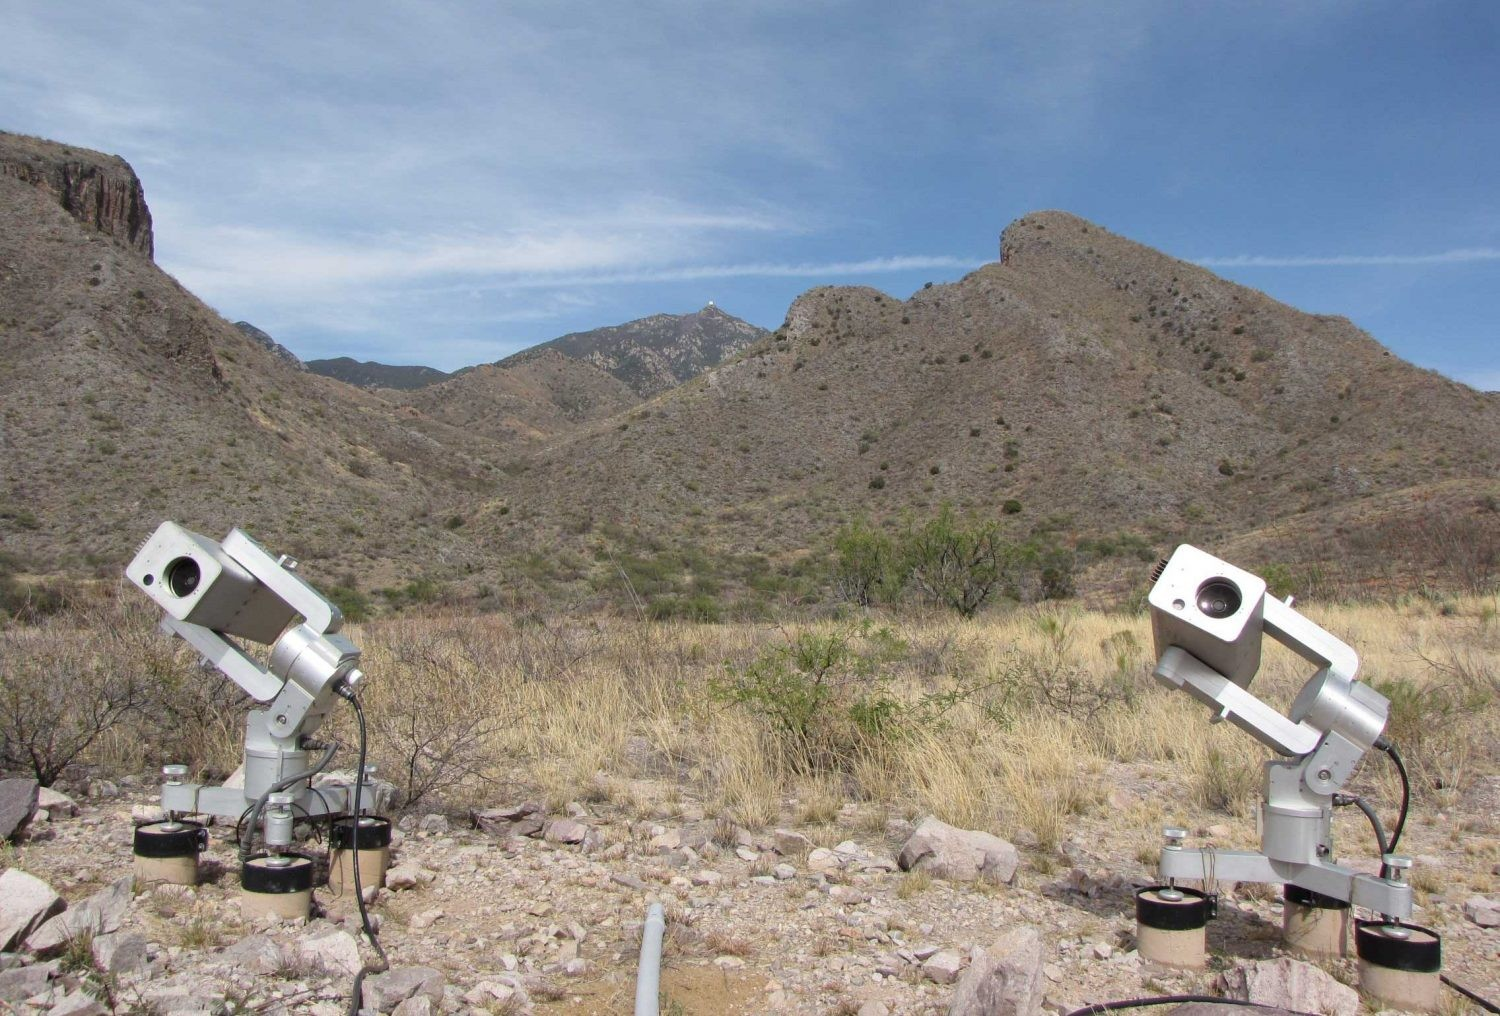 MicroObservatory's scopes at the Fred Lawrence Whipple Observatory in Arizona. Credit: Ben Cecilia